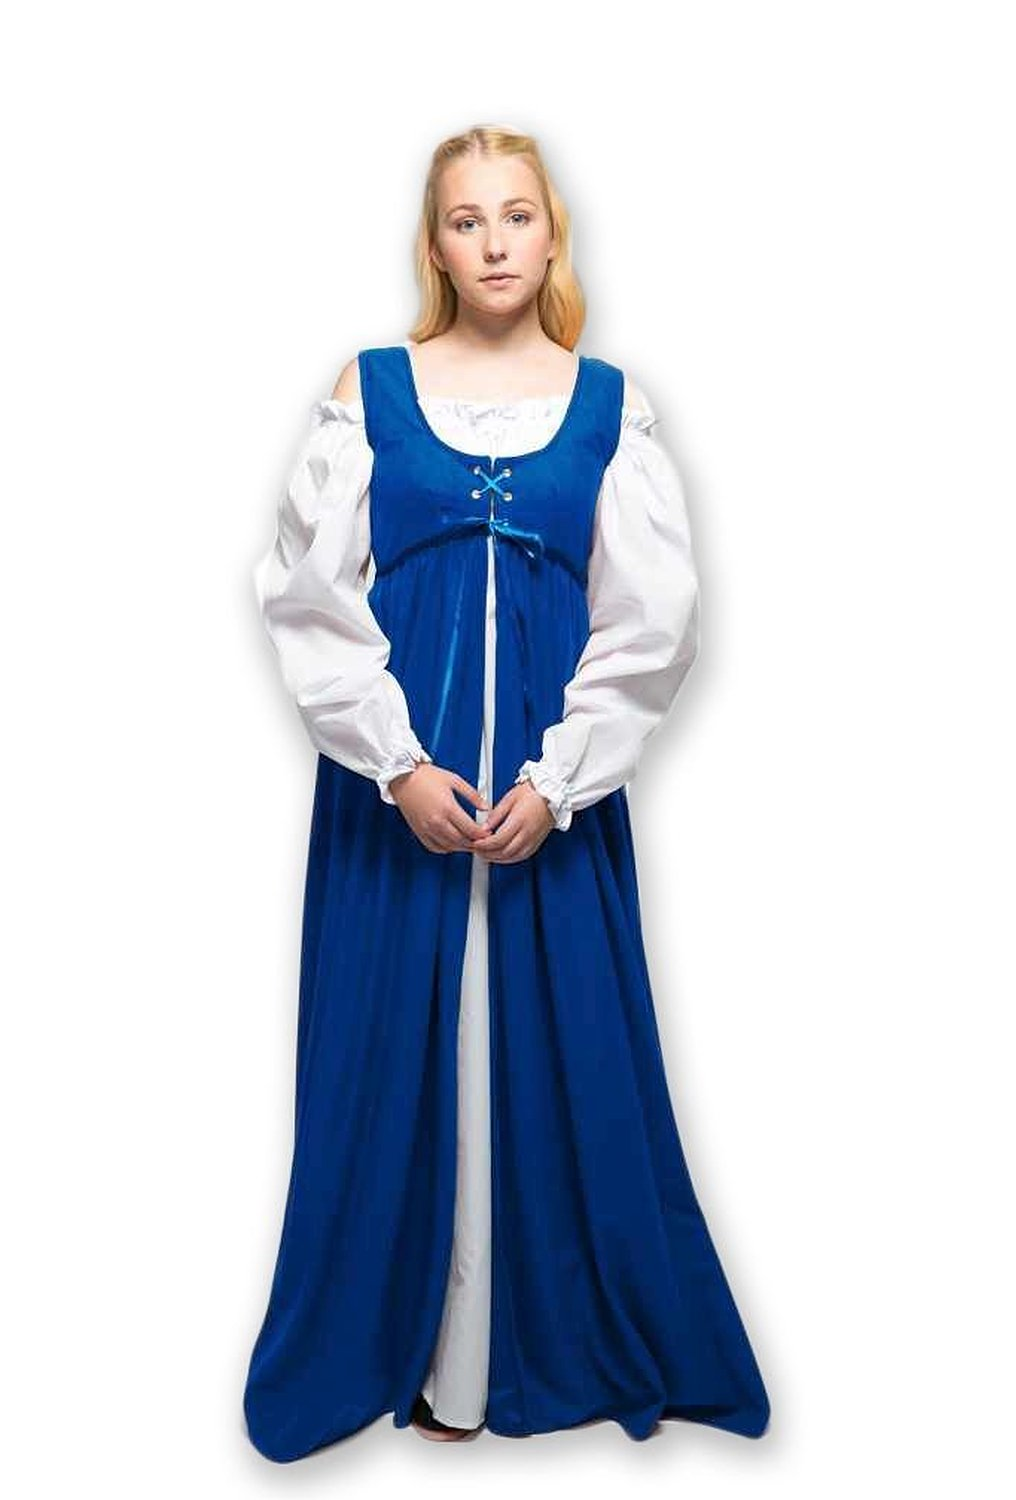 8b7ea7745a Get Quotations · 2 Piece Renaissance Medieval Gown with White Chemise